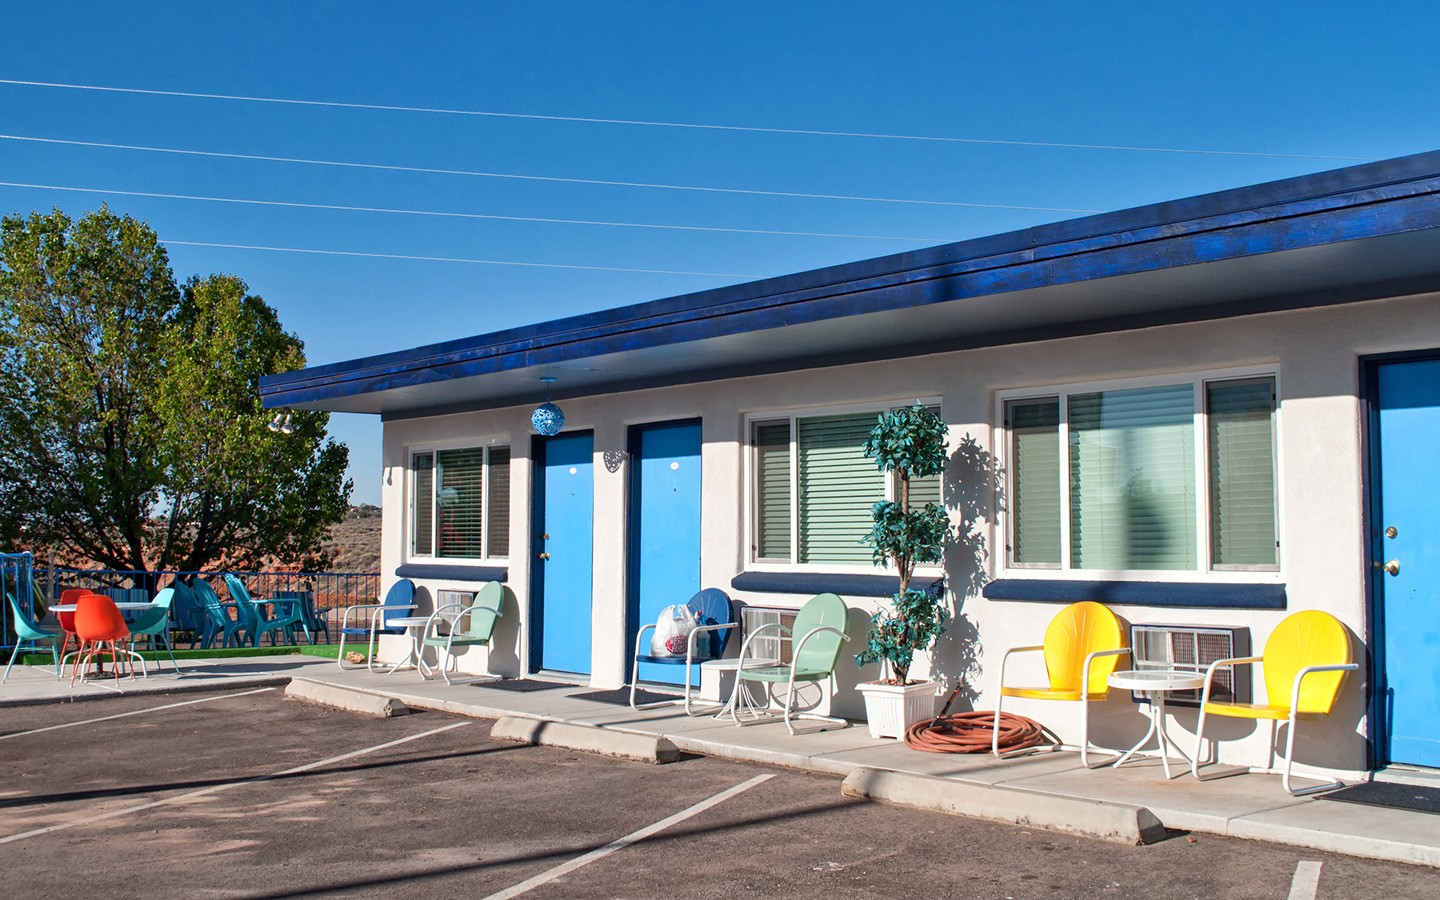 Vintage style motel in the southwest USA